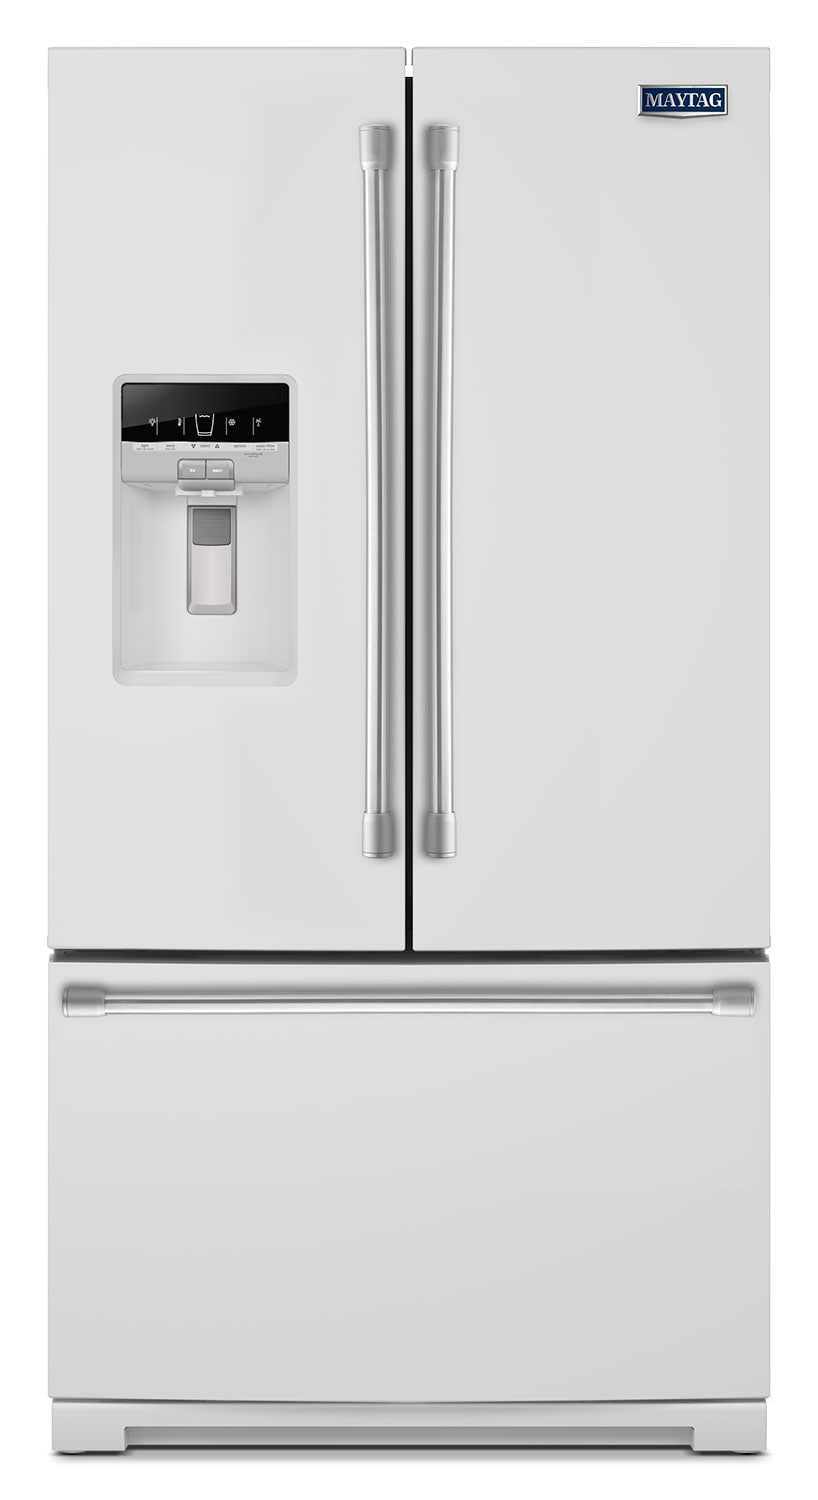 [Maytag White French Door Refrigerator (26.8 Cu. Ft.) - MFT2776DEH]